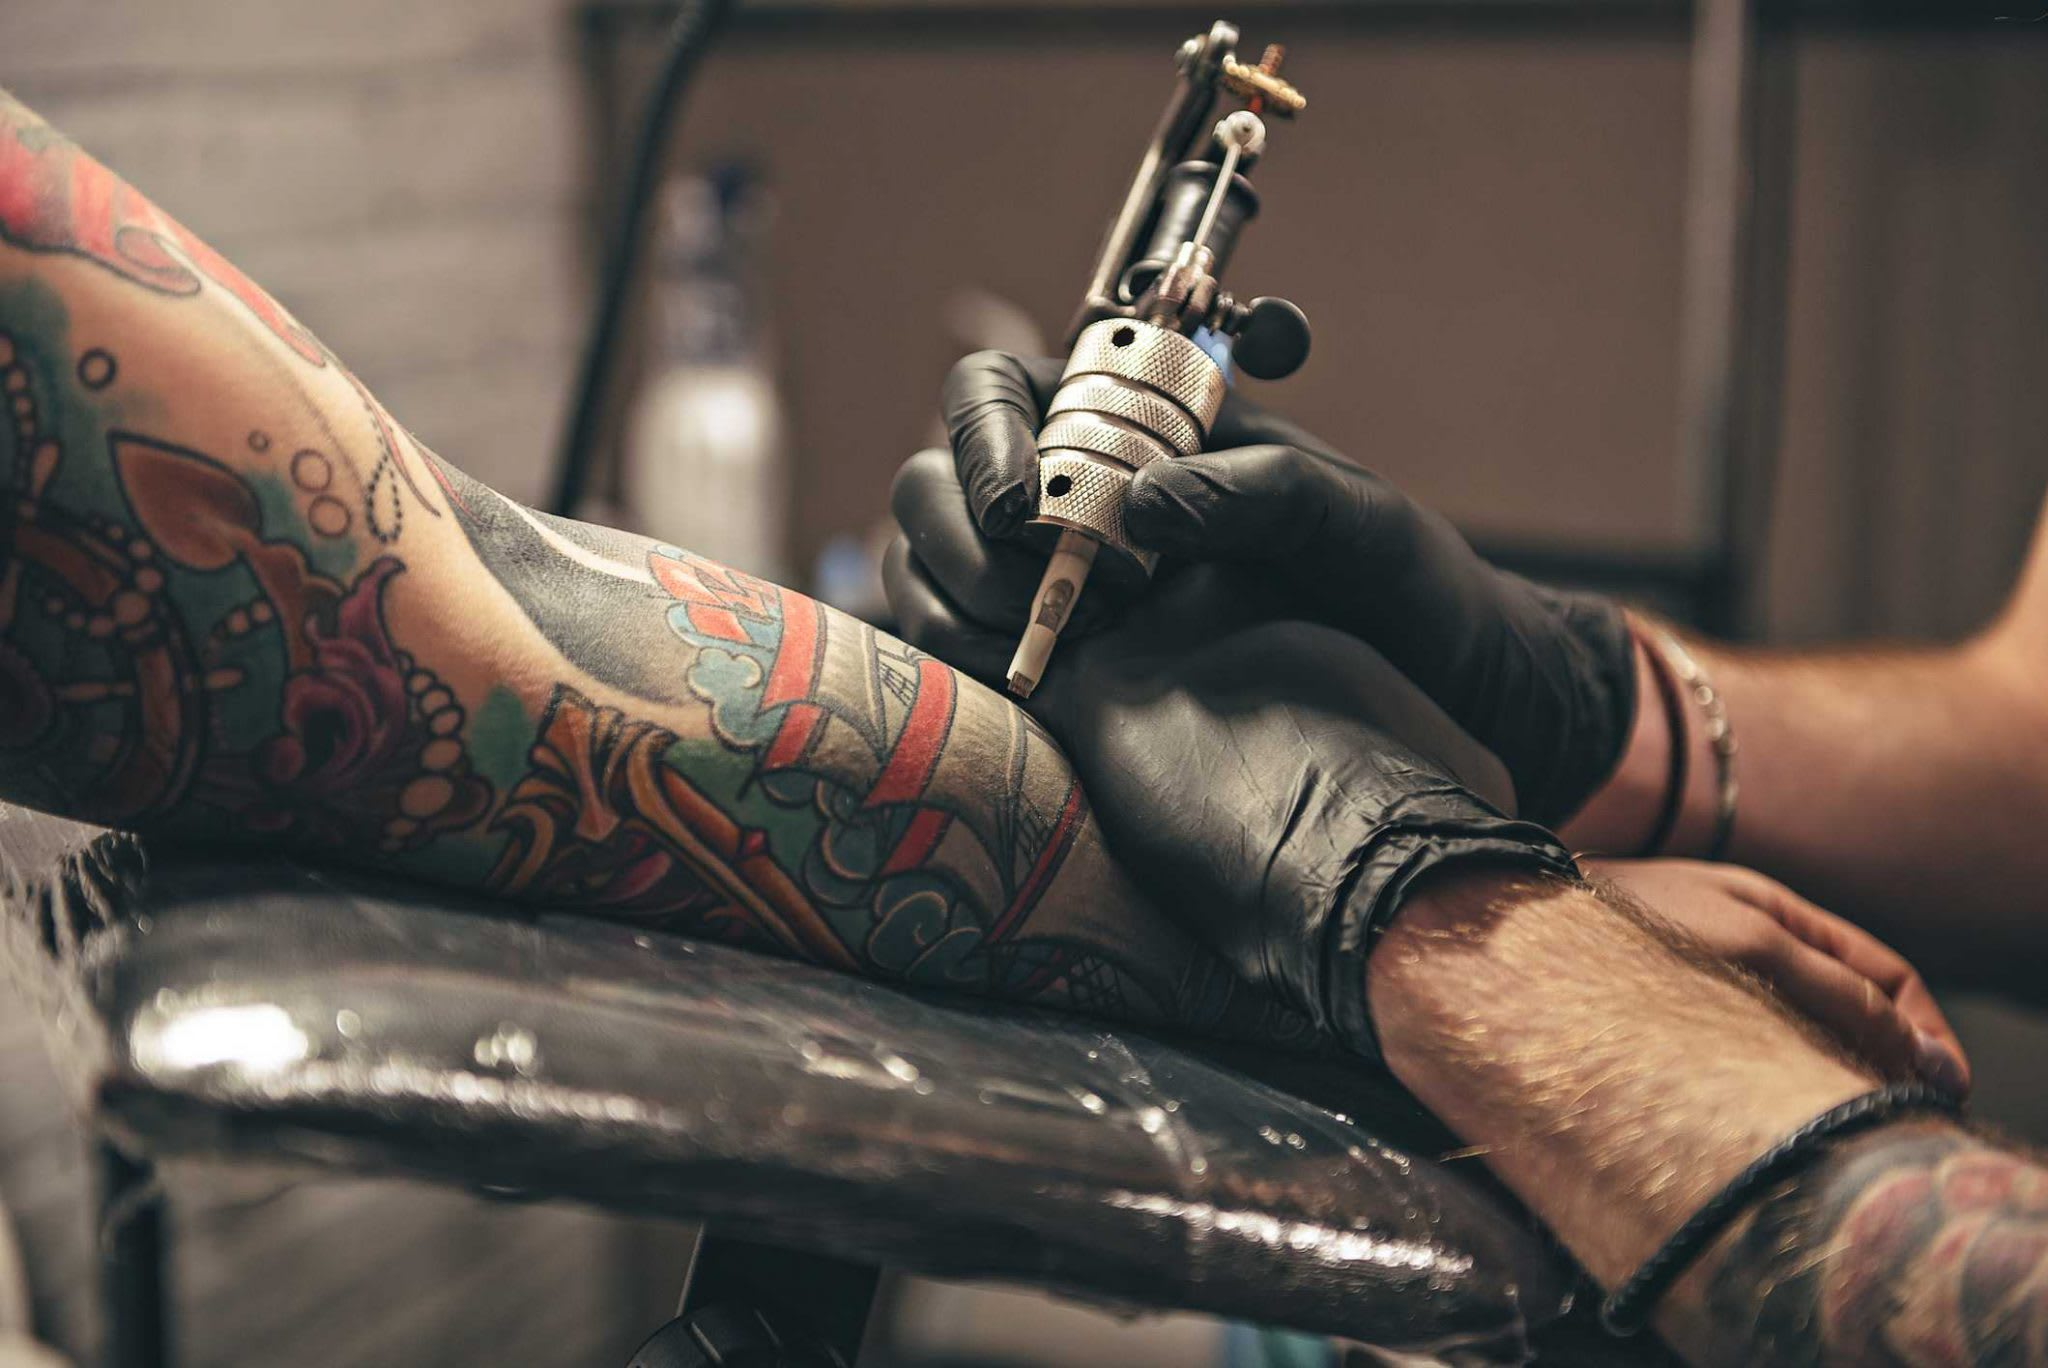 Tattoos And Diabetes Safety Risks Nanotechnology Tattoos